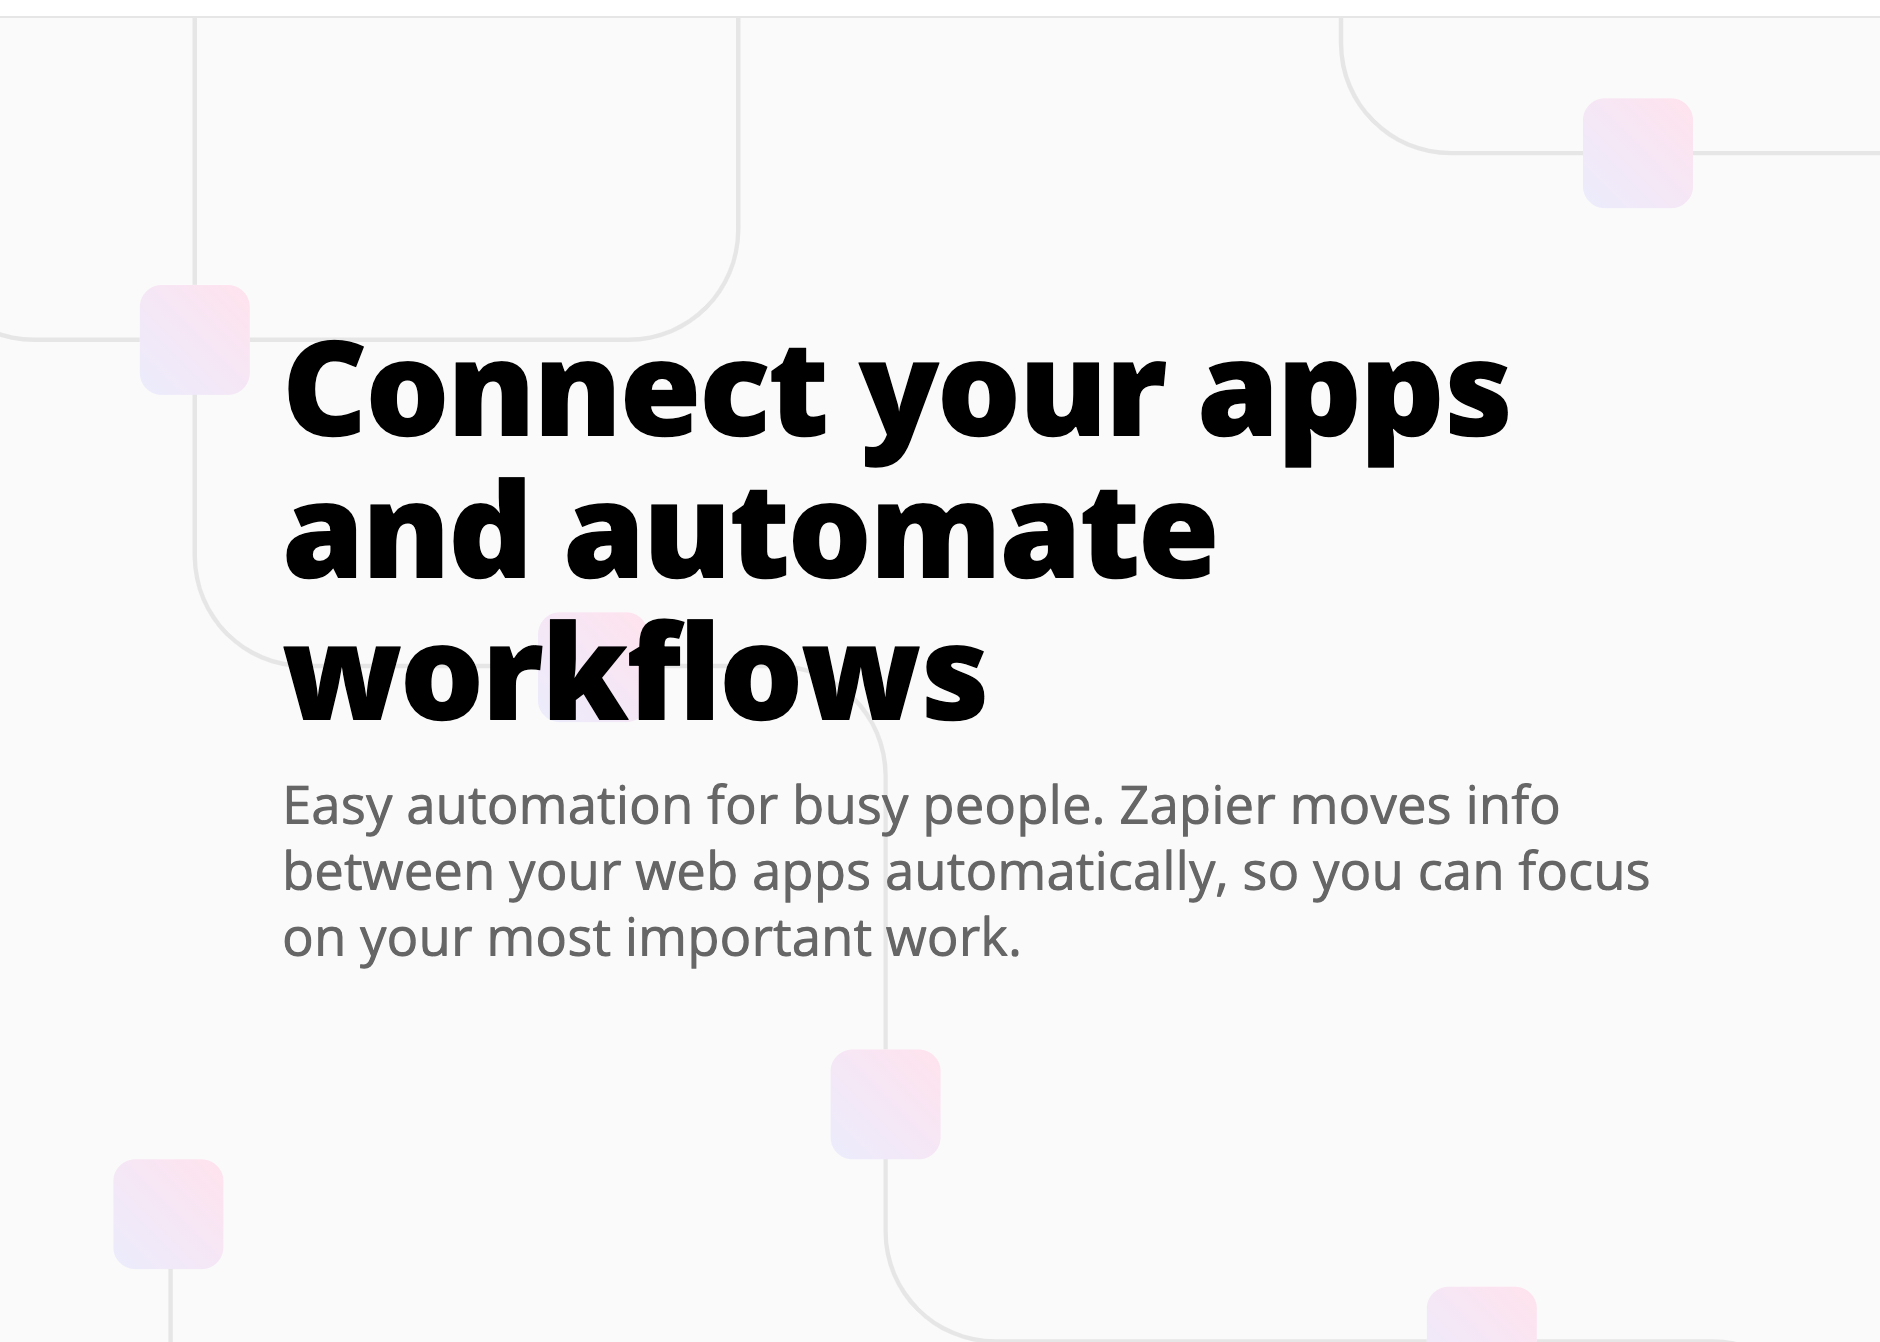 Zapier automation tools